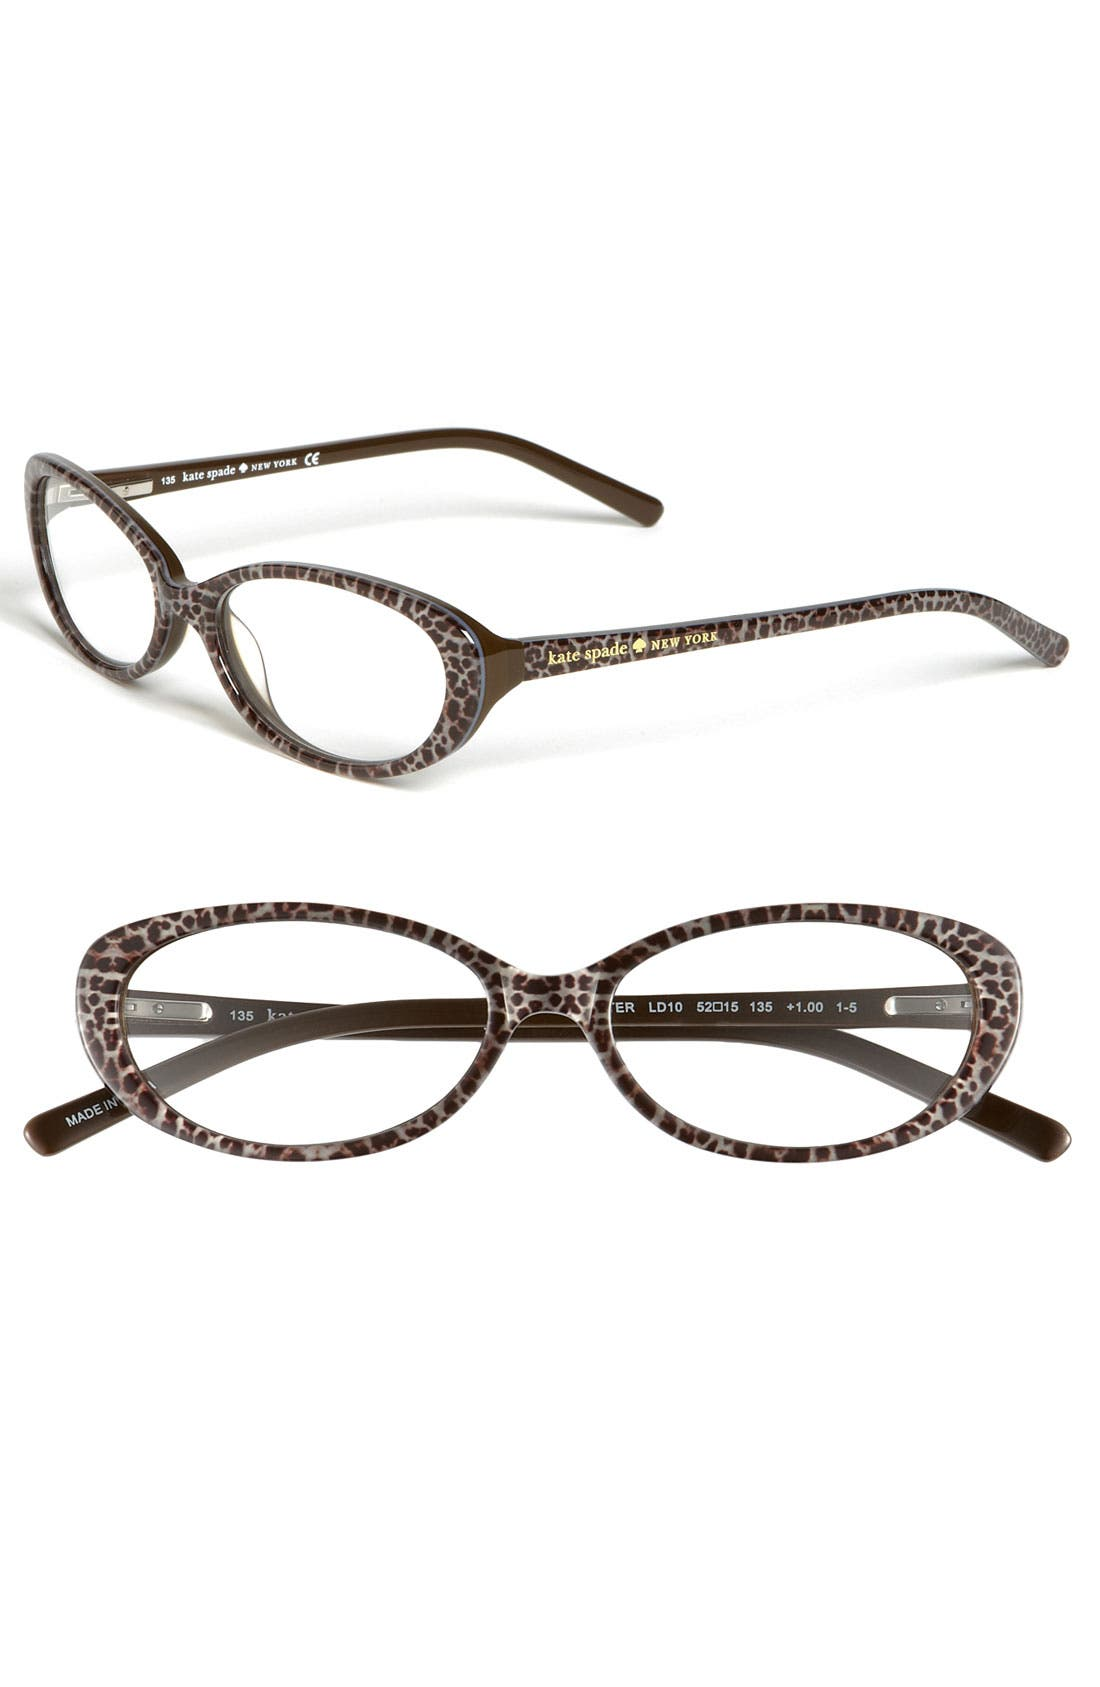 Main Image - kate spade new york 'hester' reading glasses (2 for $88)